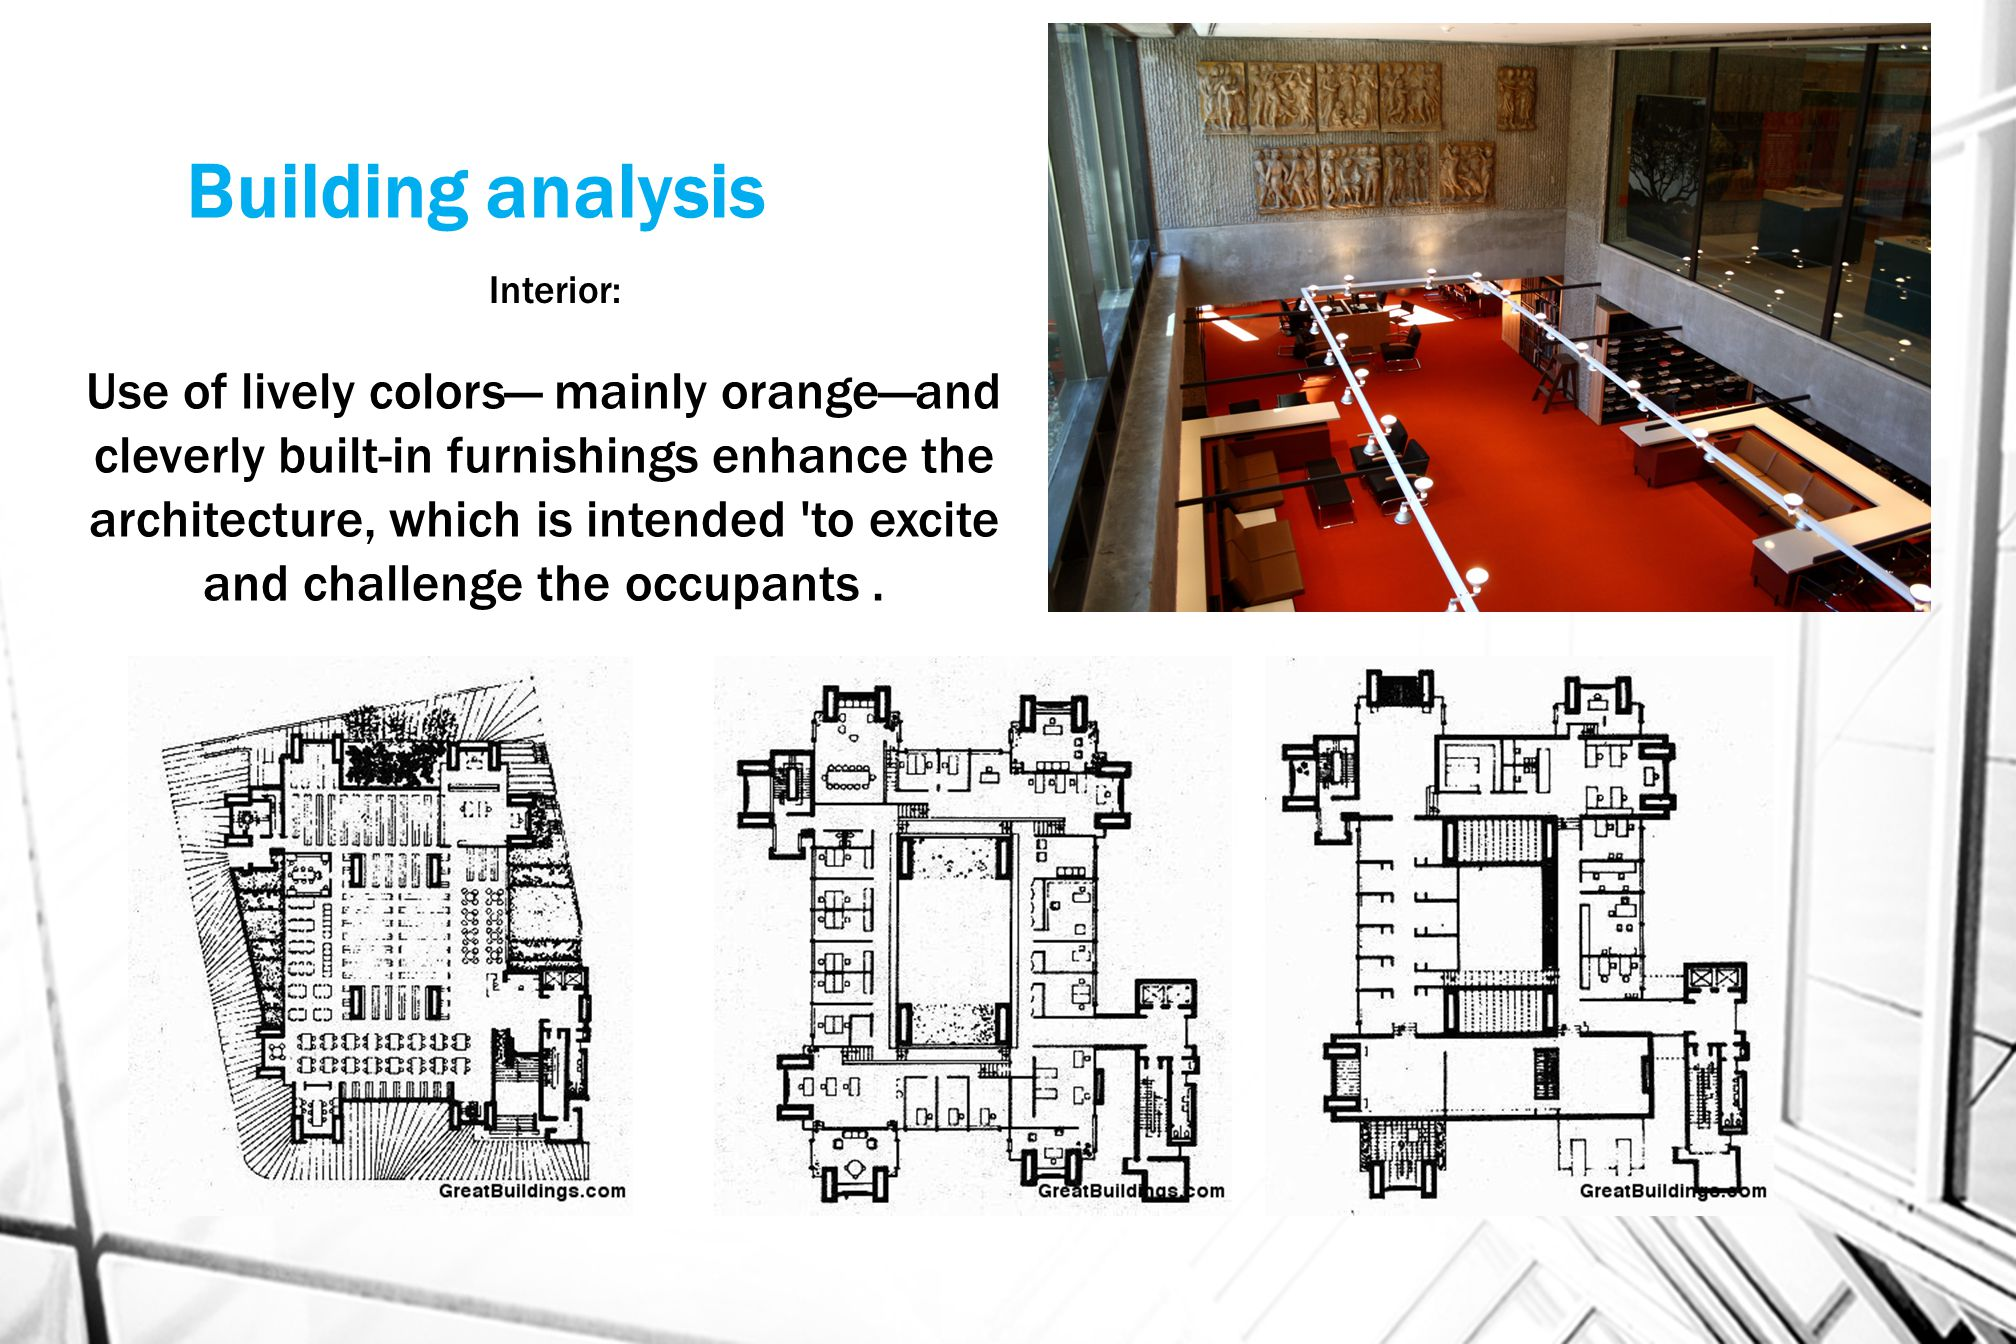 Building analysis Interior: